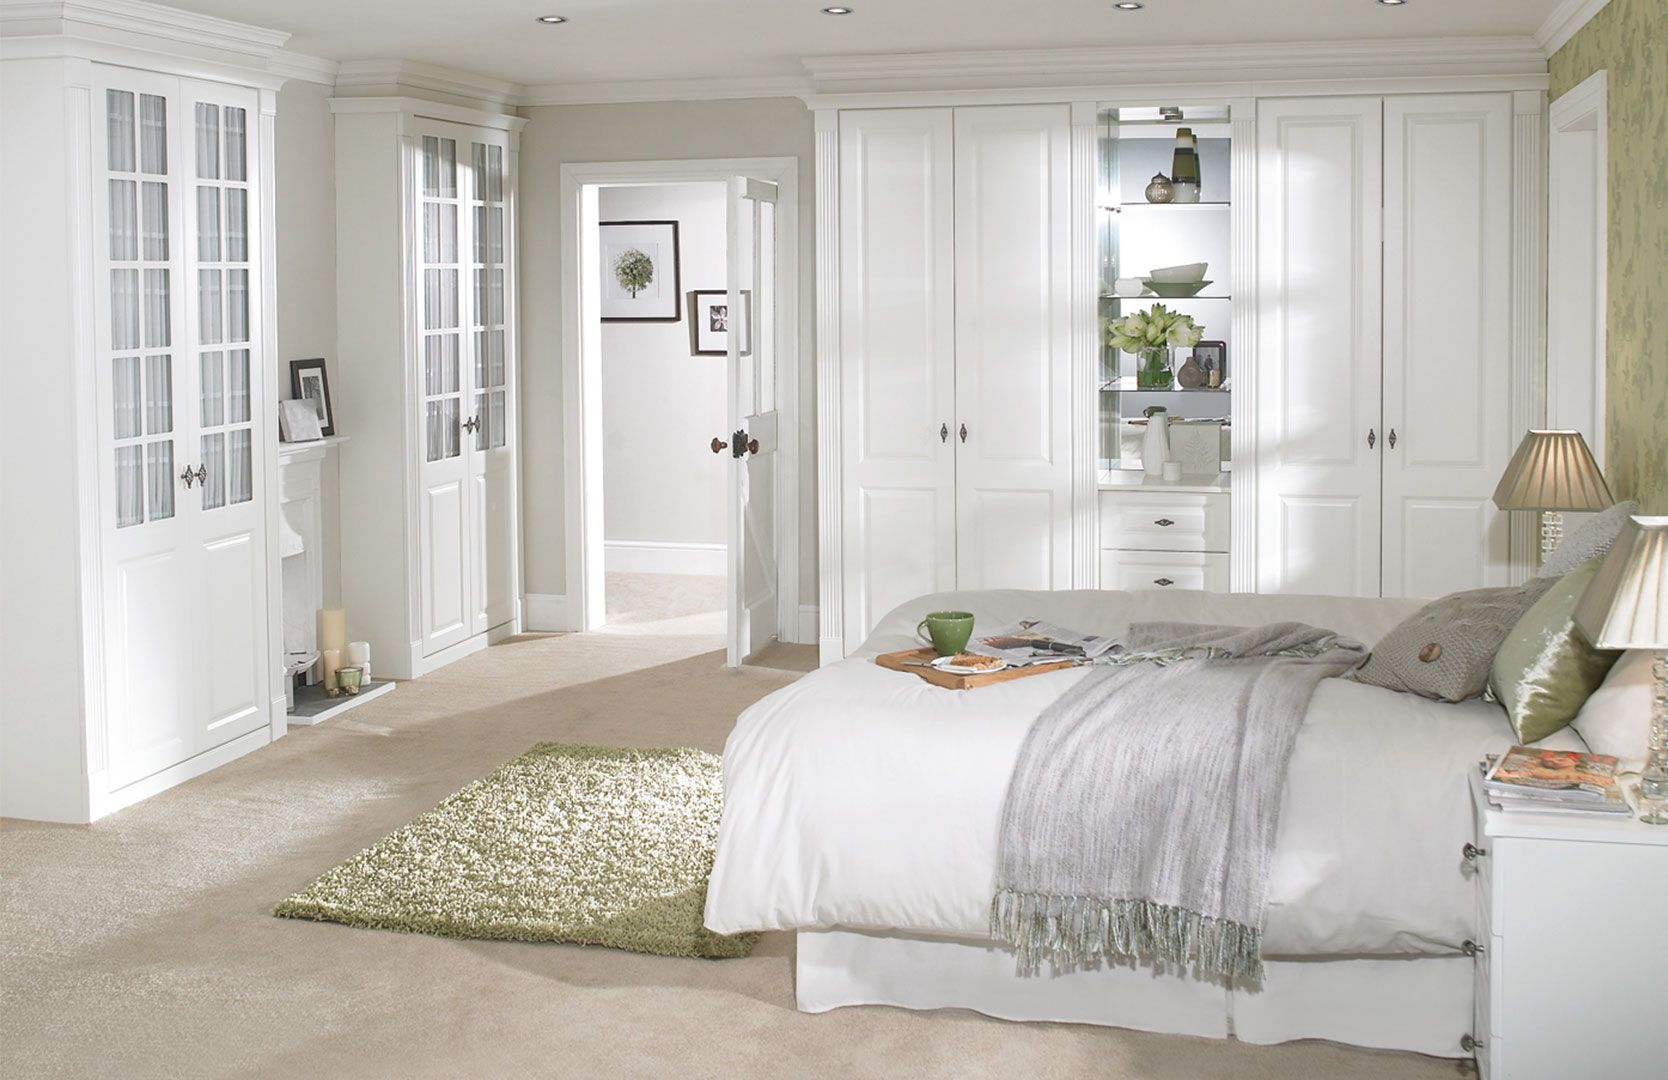 Bedroom With White Furniture white bedroom design ideas collection for your home | small